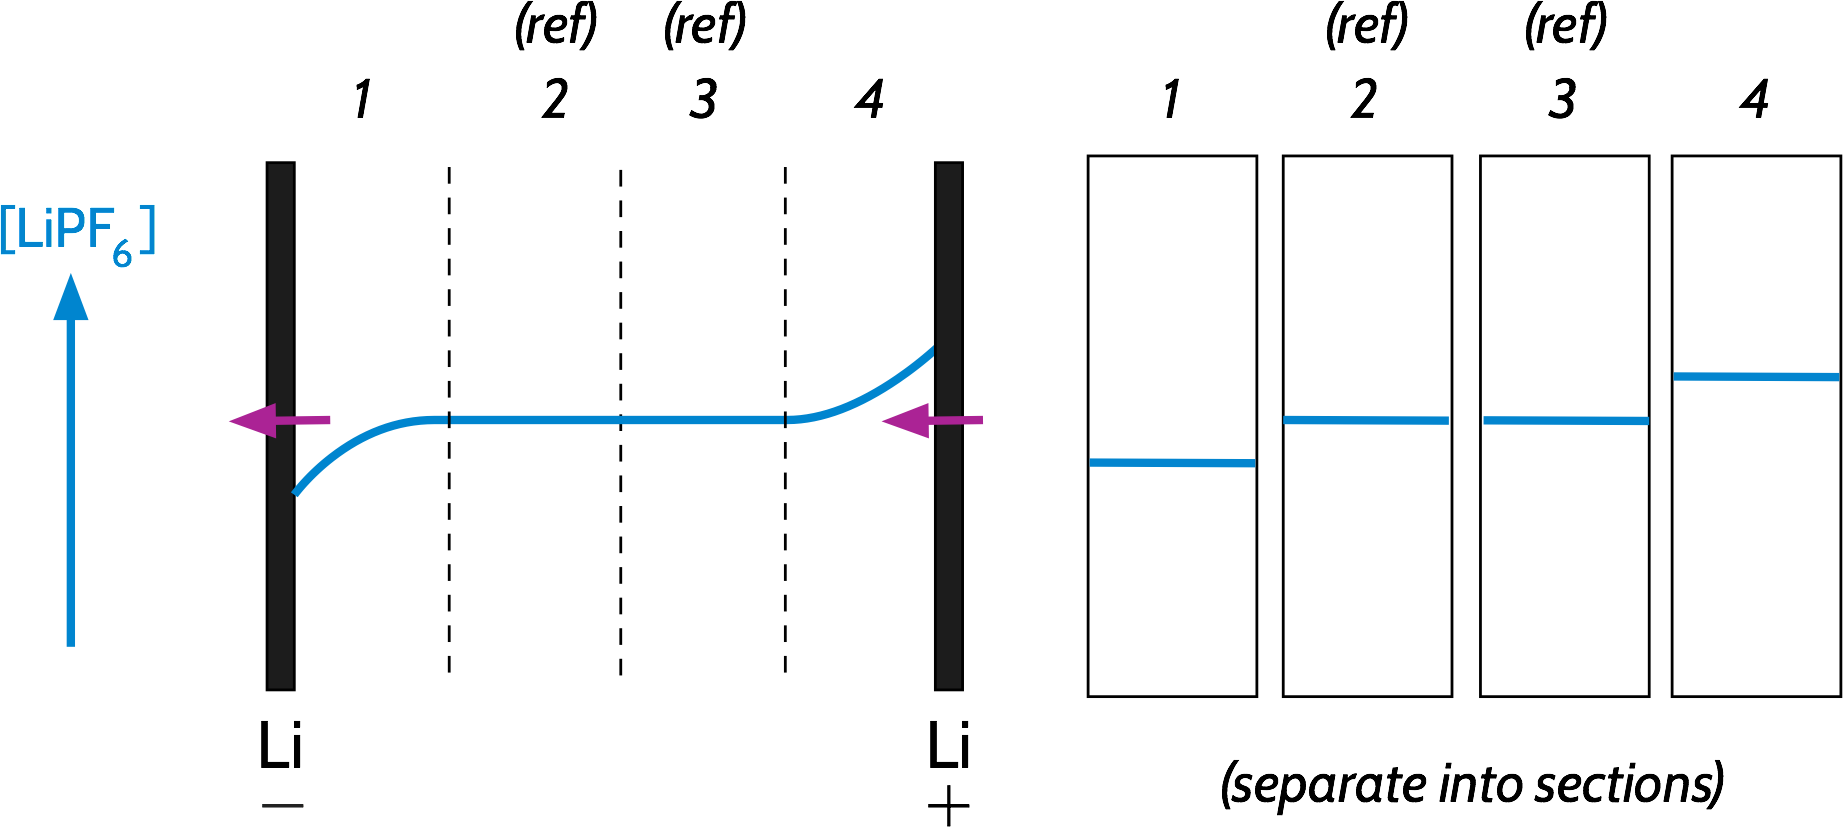 Schematic of a Hittorf experiment